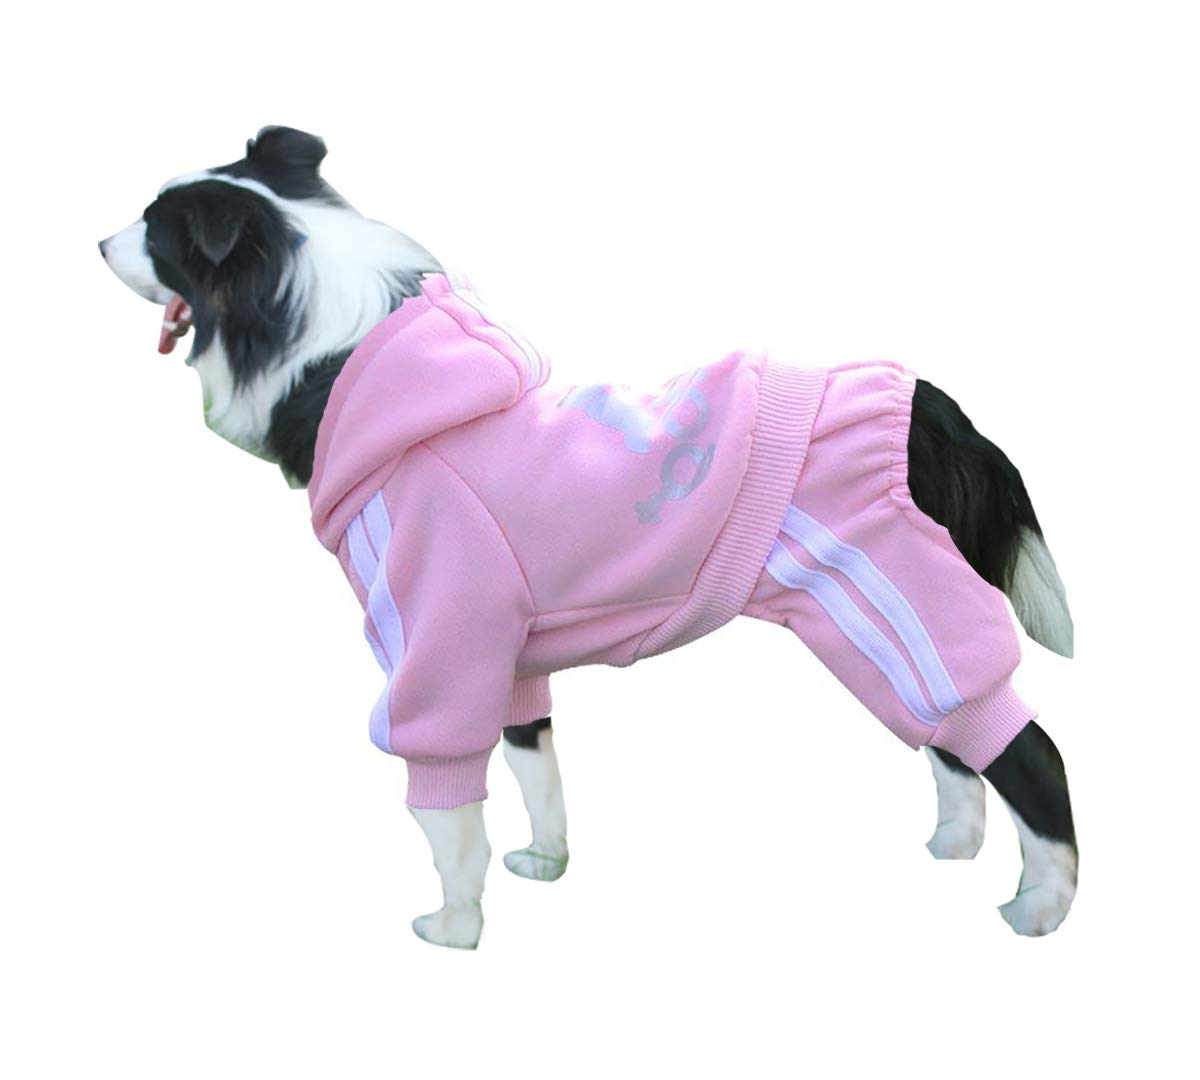 Rdc Pet Adidog Dog Hoodies, Clothes,Fleece Jumpsuit Warm Sweater,4 Legs Cotton Jacket Sweat Shirt Coat Small Dog Medium Dog Large Dog (3XL, Pink)